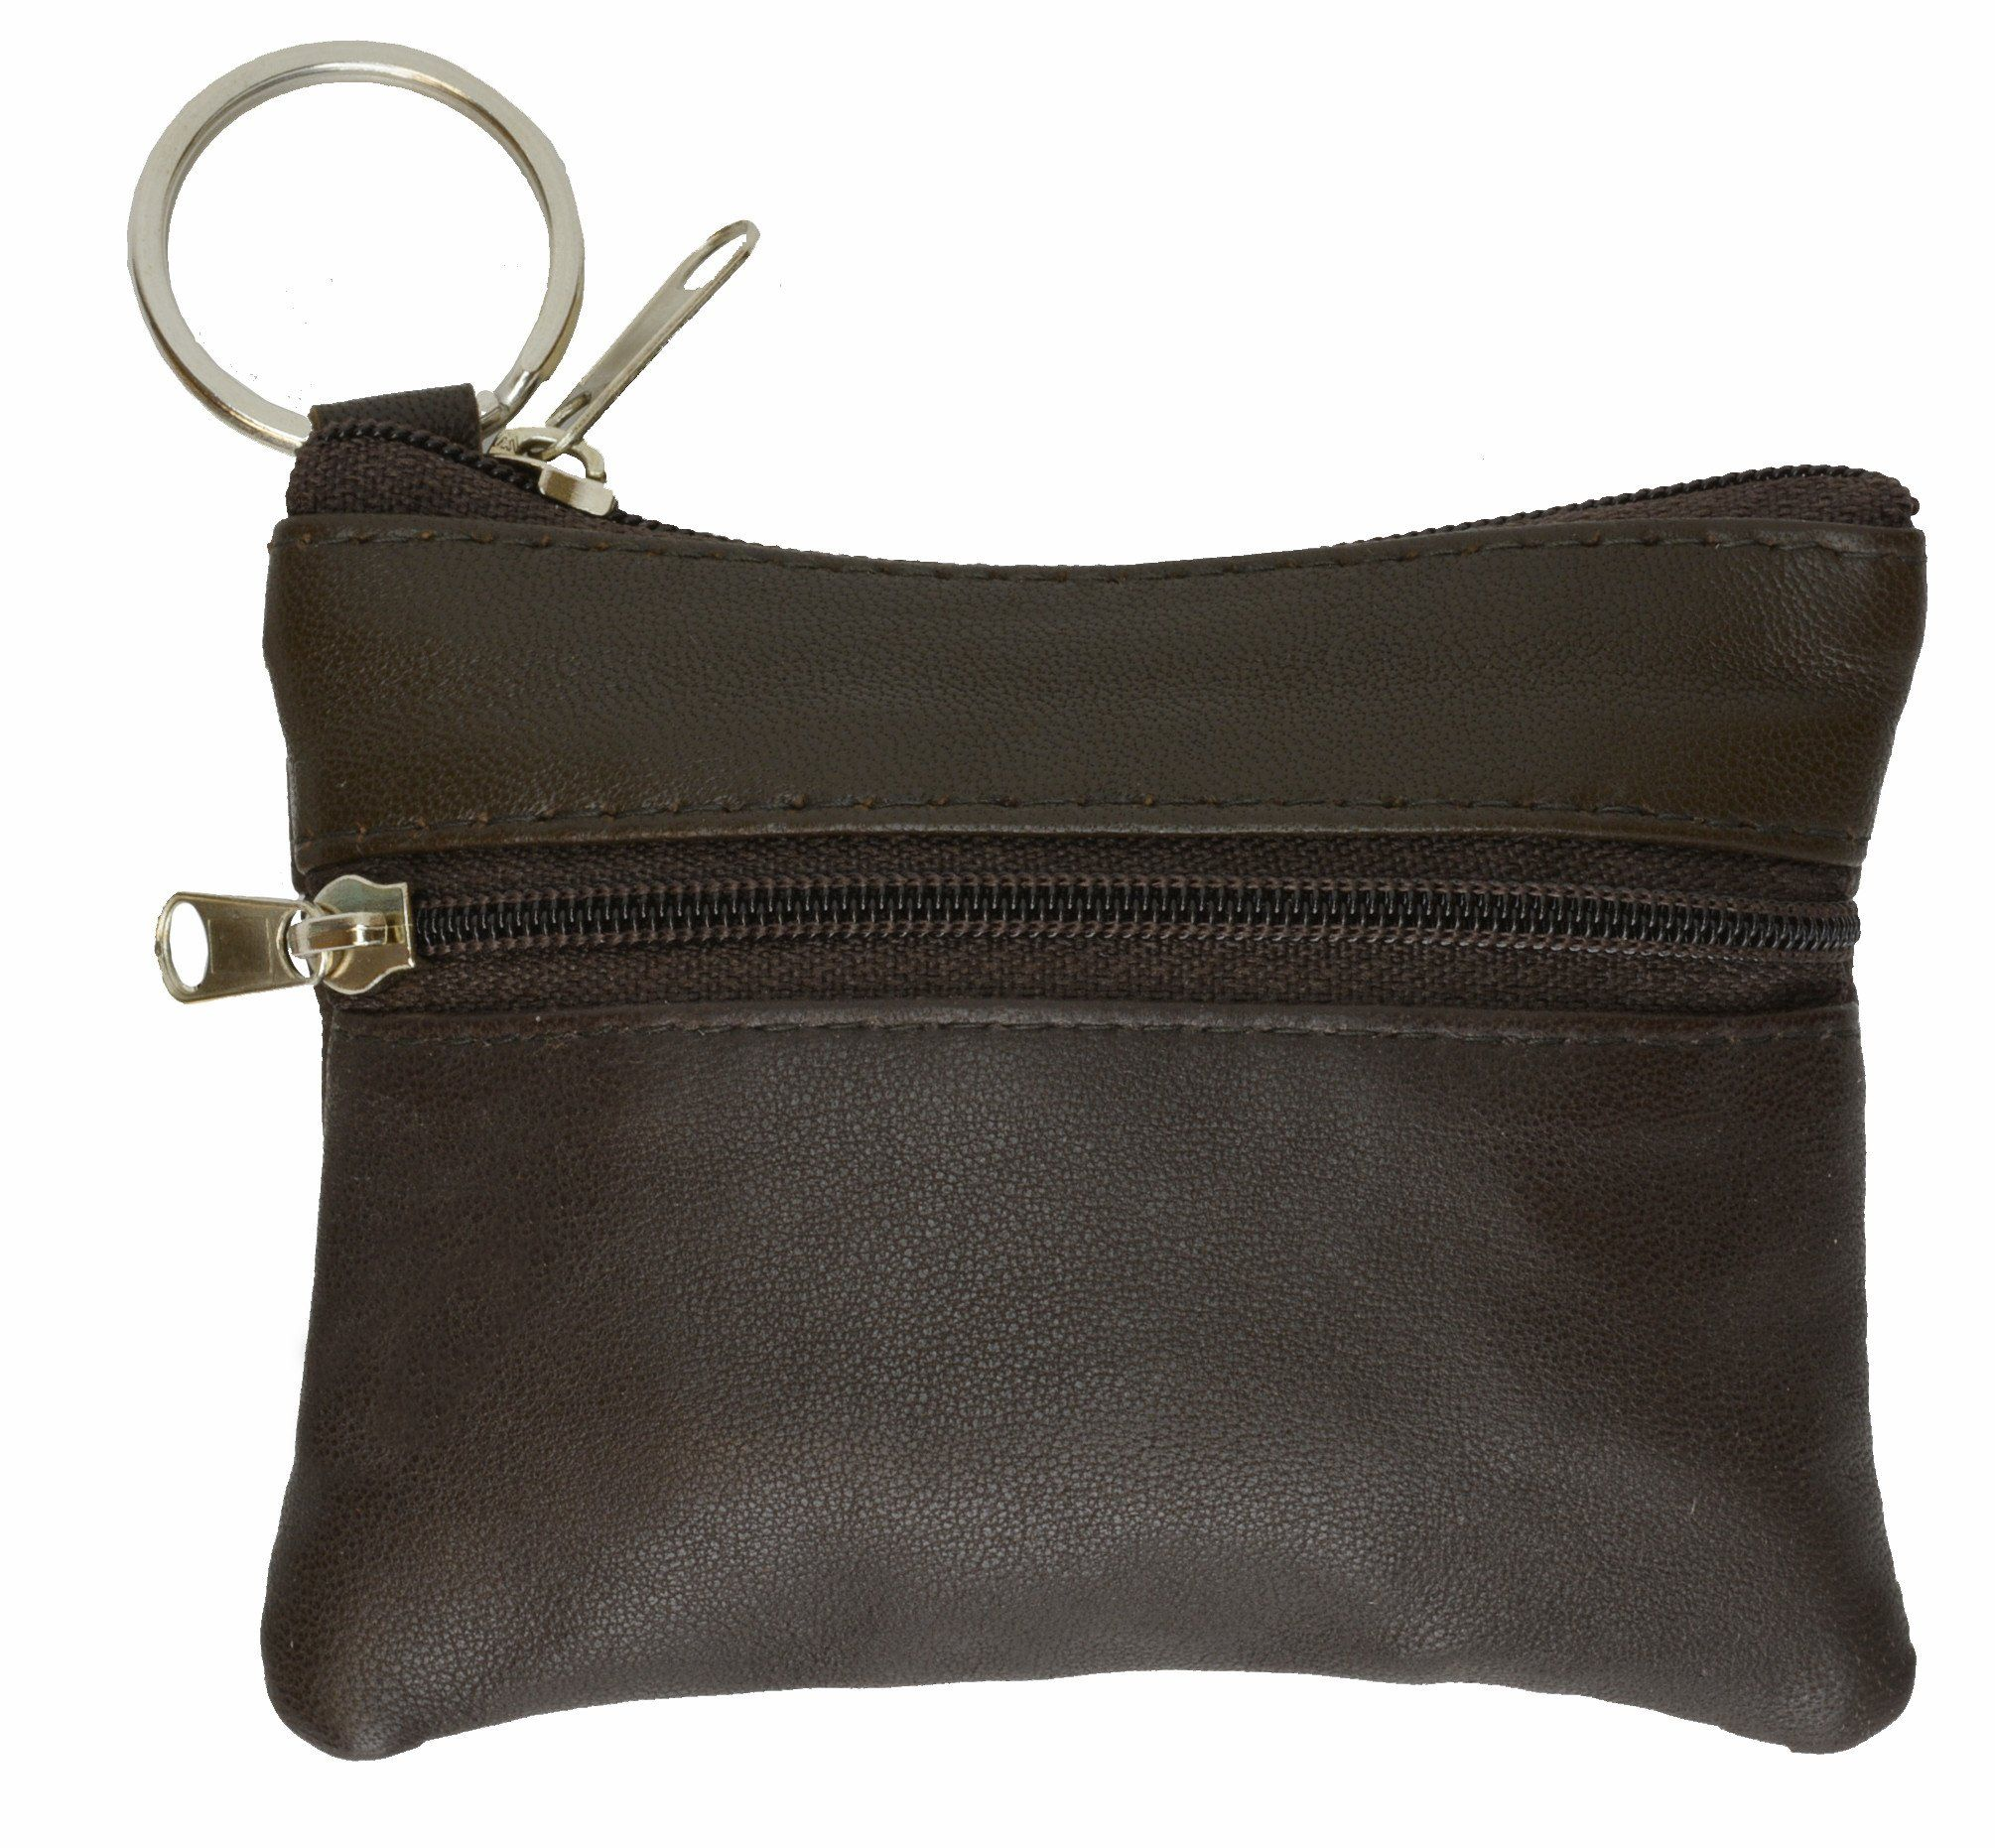 Black Leather Coin Purse Mini Wallet Key Pouch 2 Zippered Sections ID Slot Black